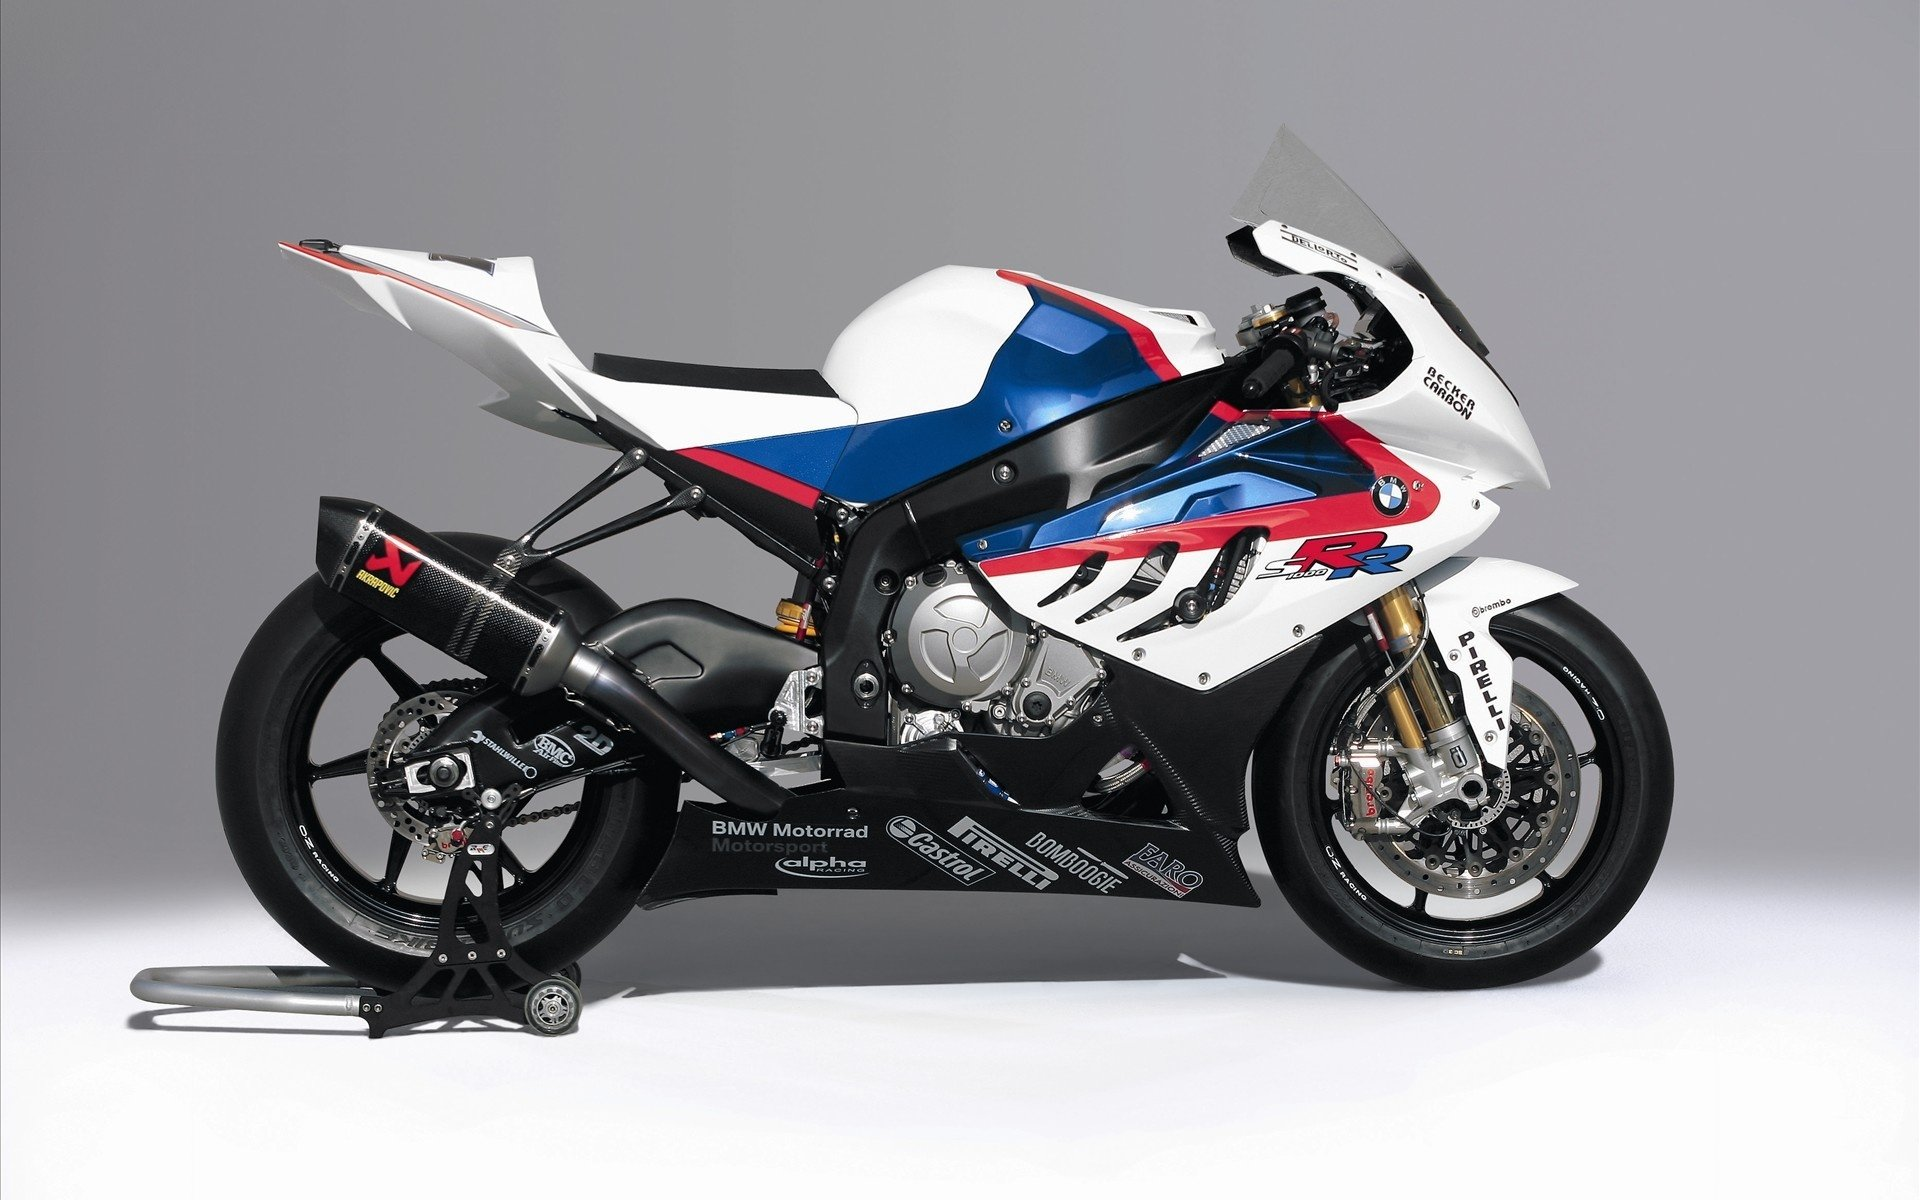 Vehicles - BMW  Vehicle Bike Motorcycle Superbike Wallpaper